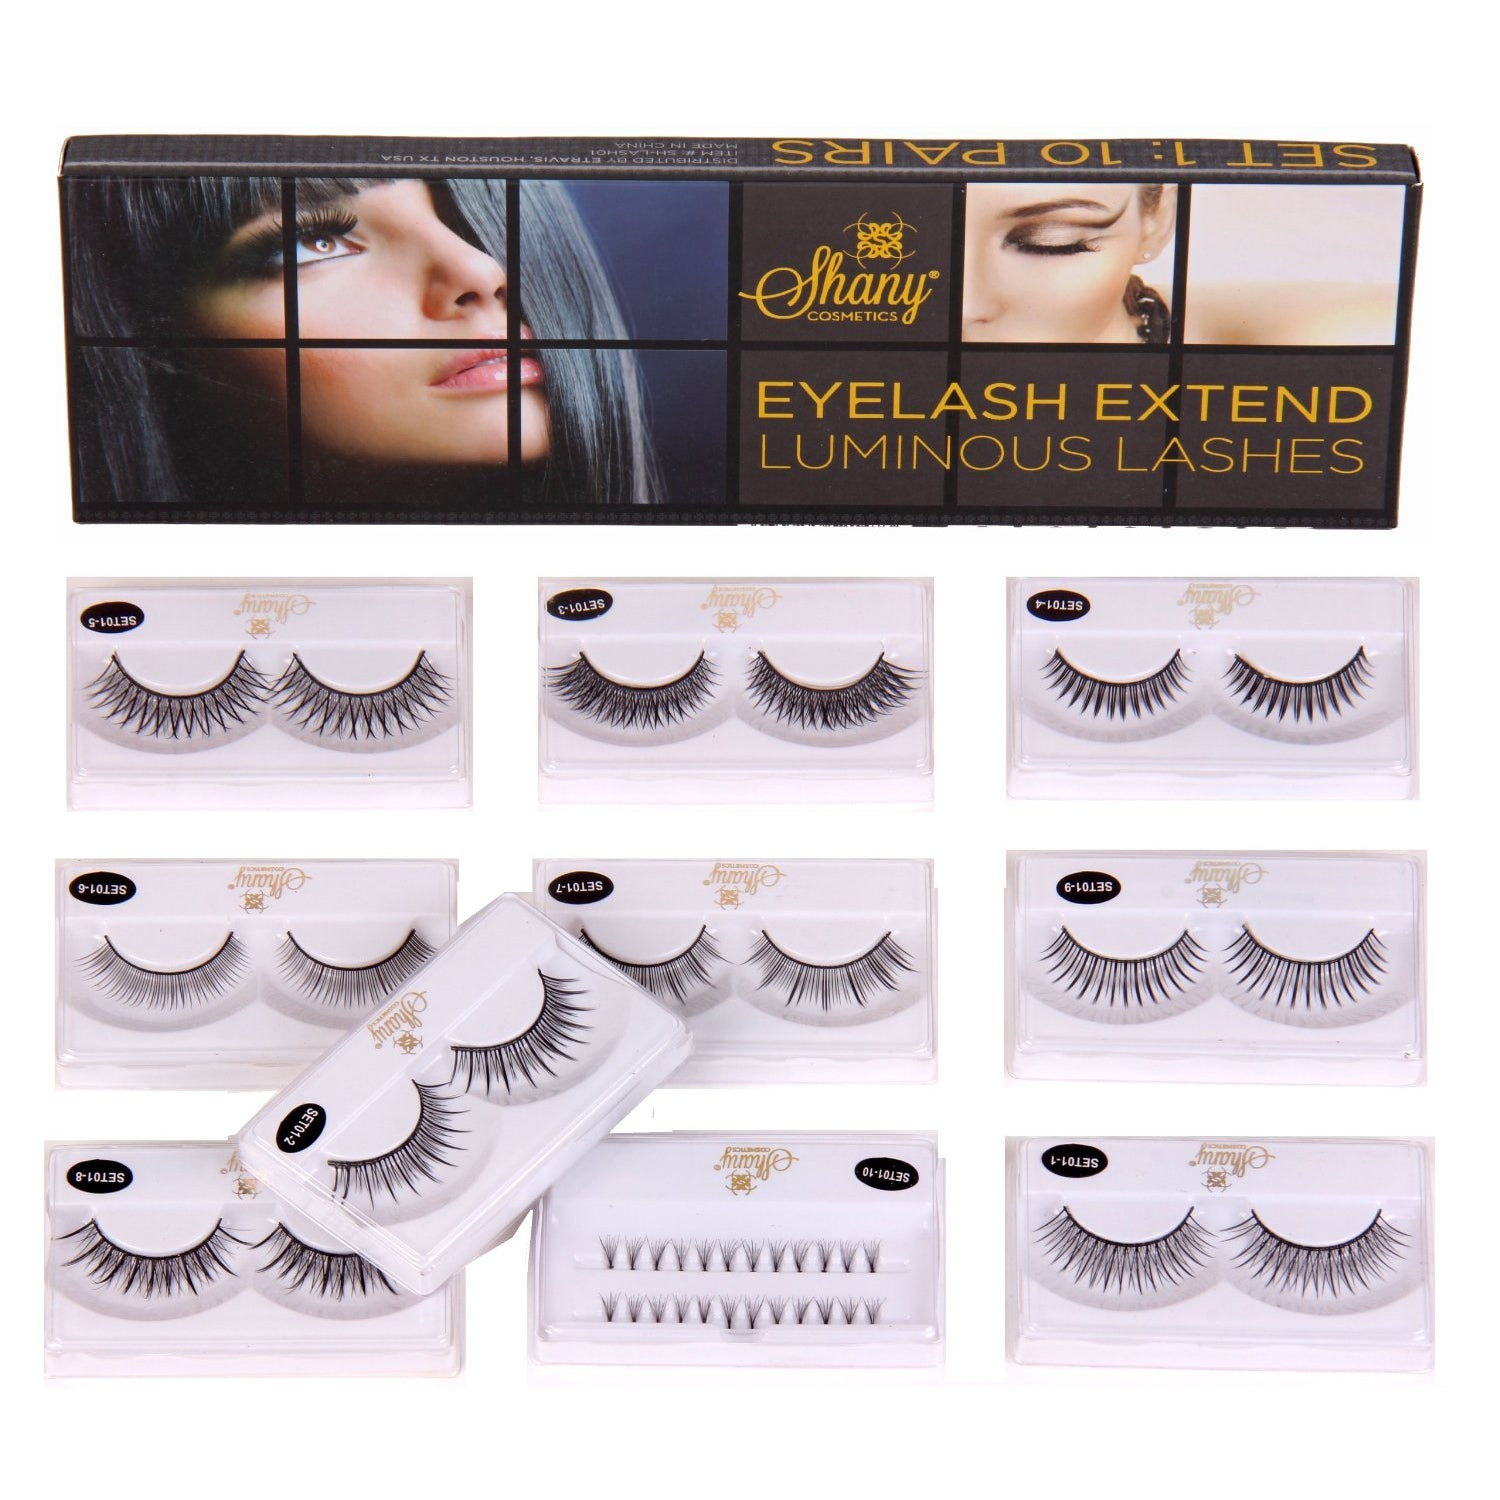 Shany Cosmetics Eyelash Extend Luminous Lashes Assorted Reusable Eyelashes (Thin Collection) at Sears.com